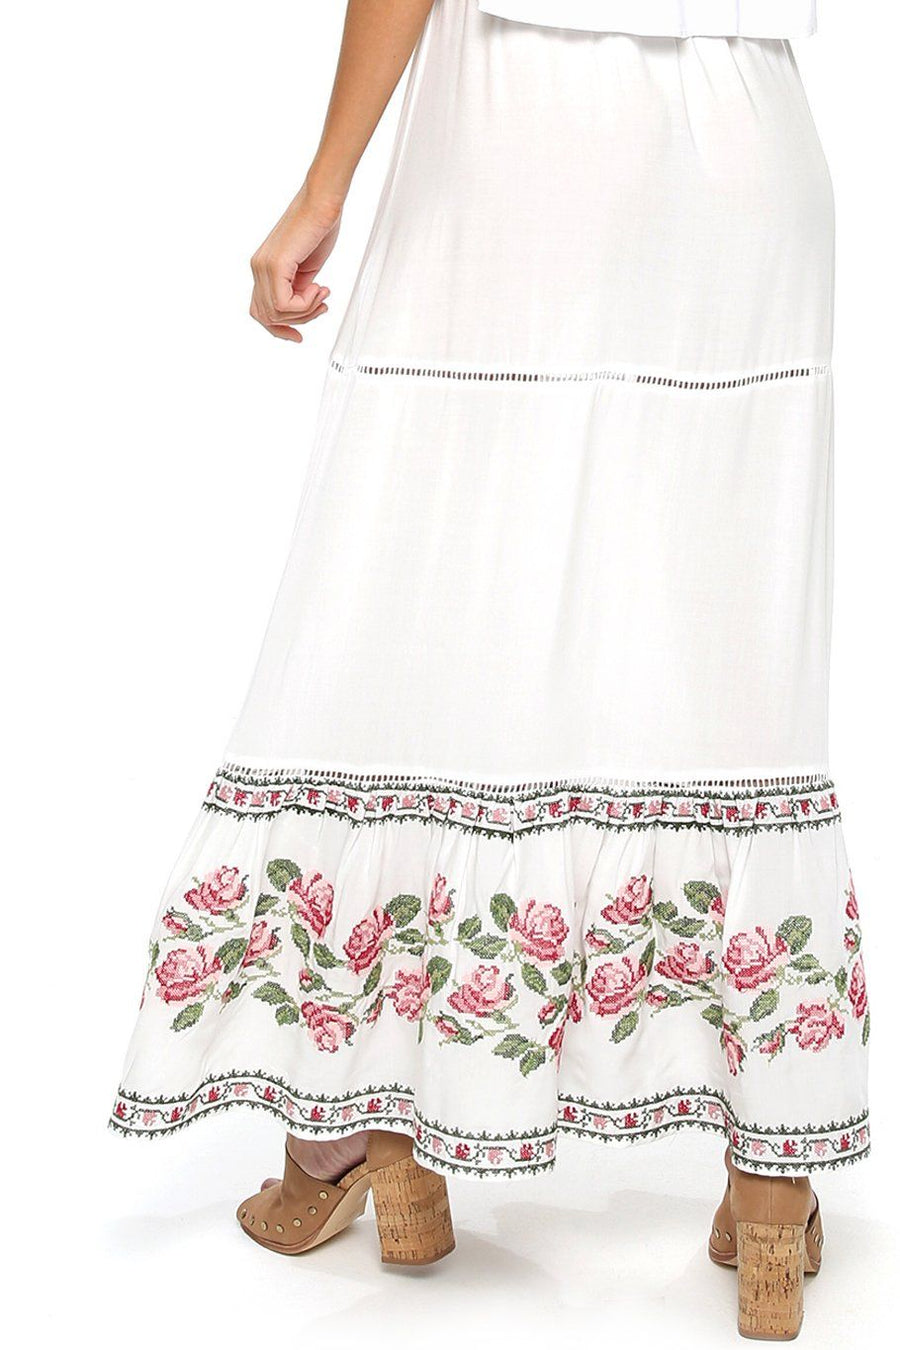 Opal Smocking Maxi Skirt - Rose Garden - Shore